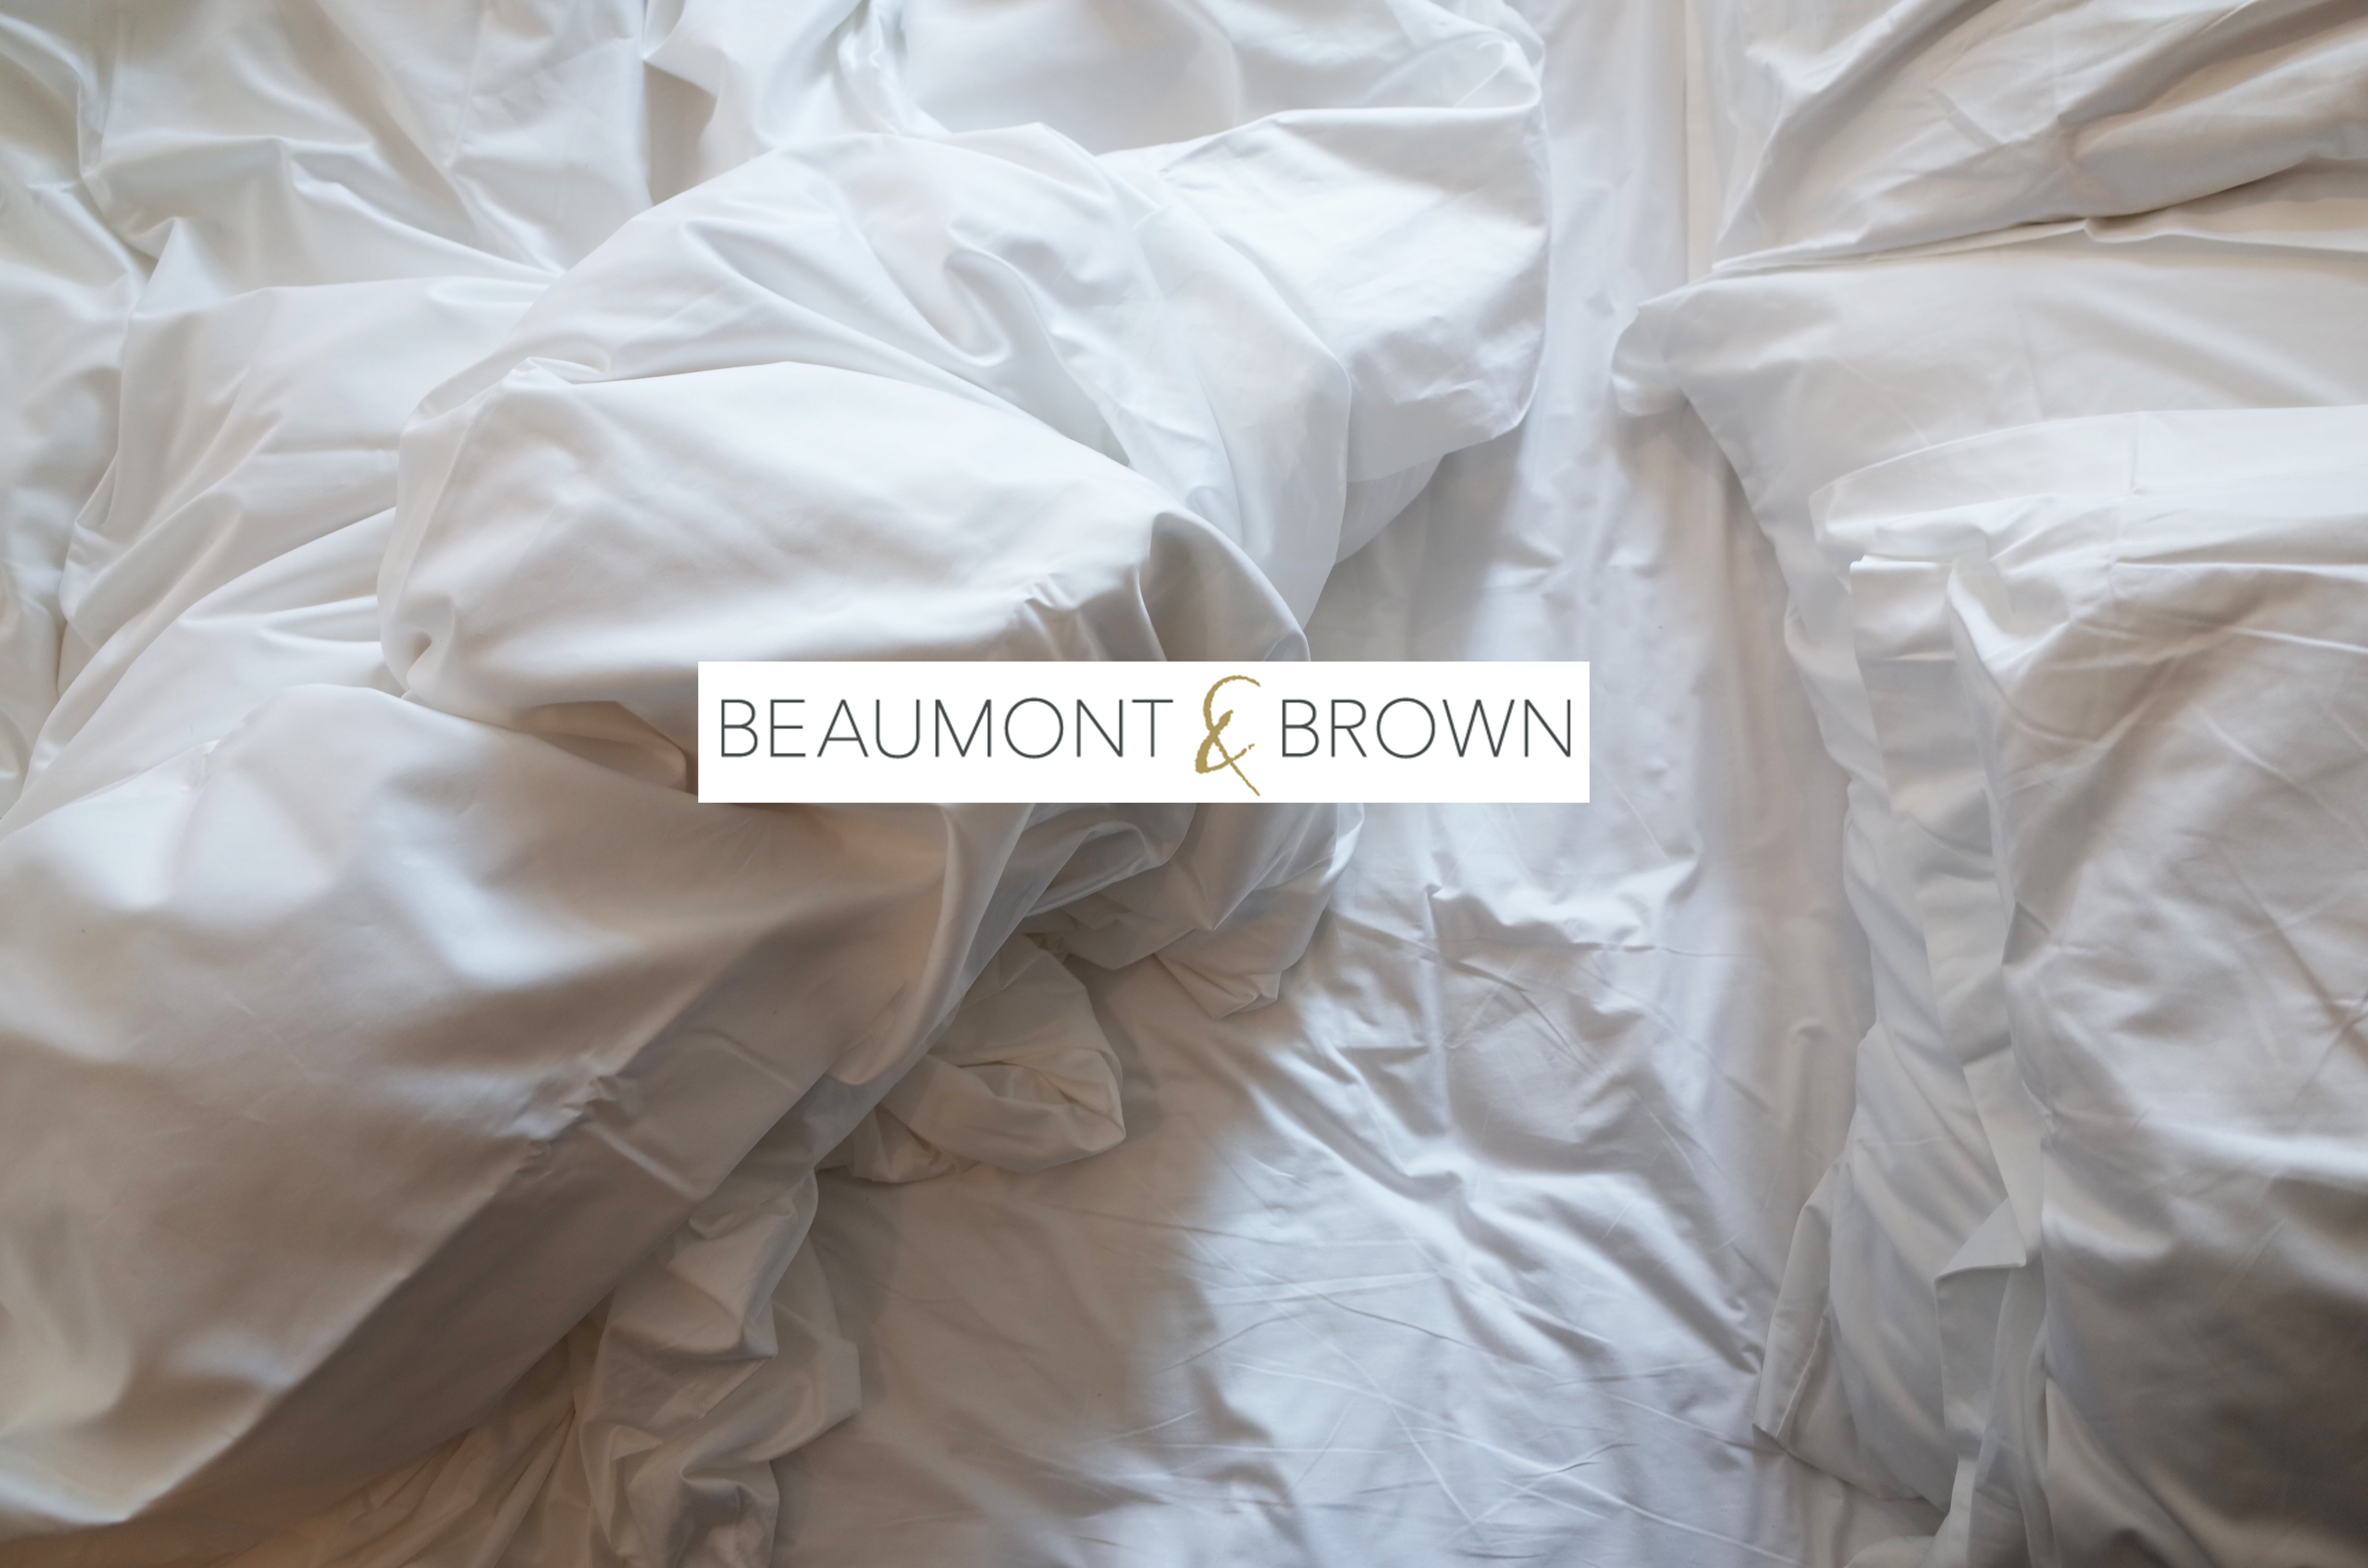 Beaumont and Brown in the Tracey Neuls Bedroom